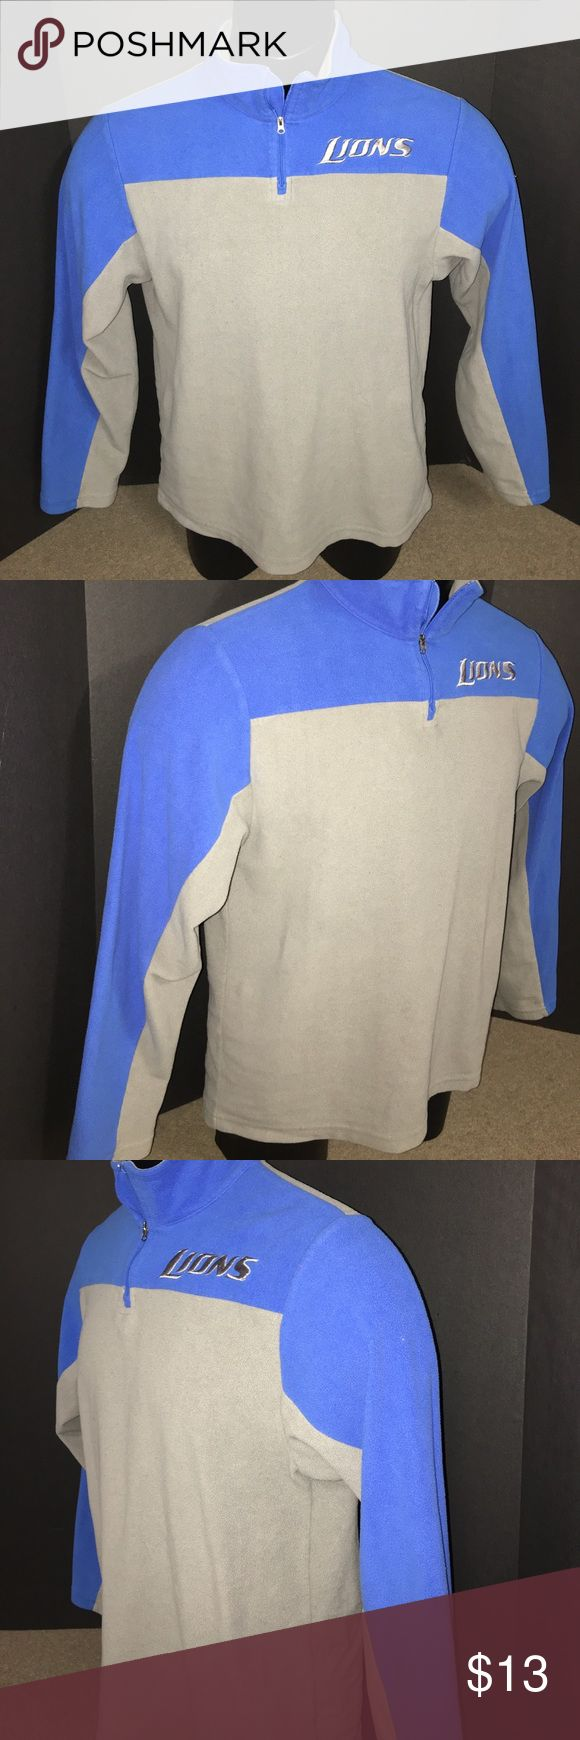 NFL Apparel Detroit Lions Pullover Fleece Men's SM Men's Size Small Pullover Fleece. Detroit Lions. NFL Team Apparel. Honolulu Blue and Silver. Stitched Logo on chest. No rips, holes, snags or stains. Not perfect - does show average signs of wear, but still very nice and wearable. NFL Shirts Sweatshirts & Hoodies